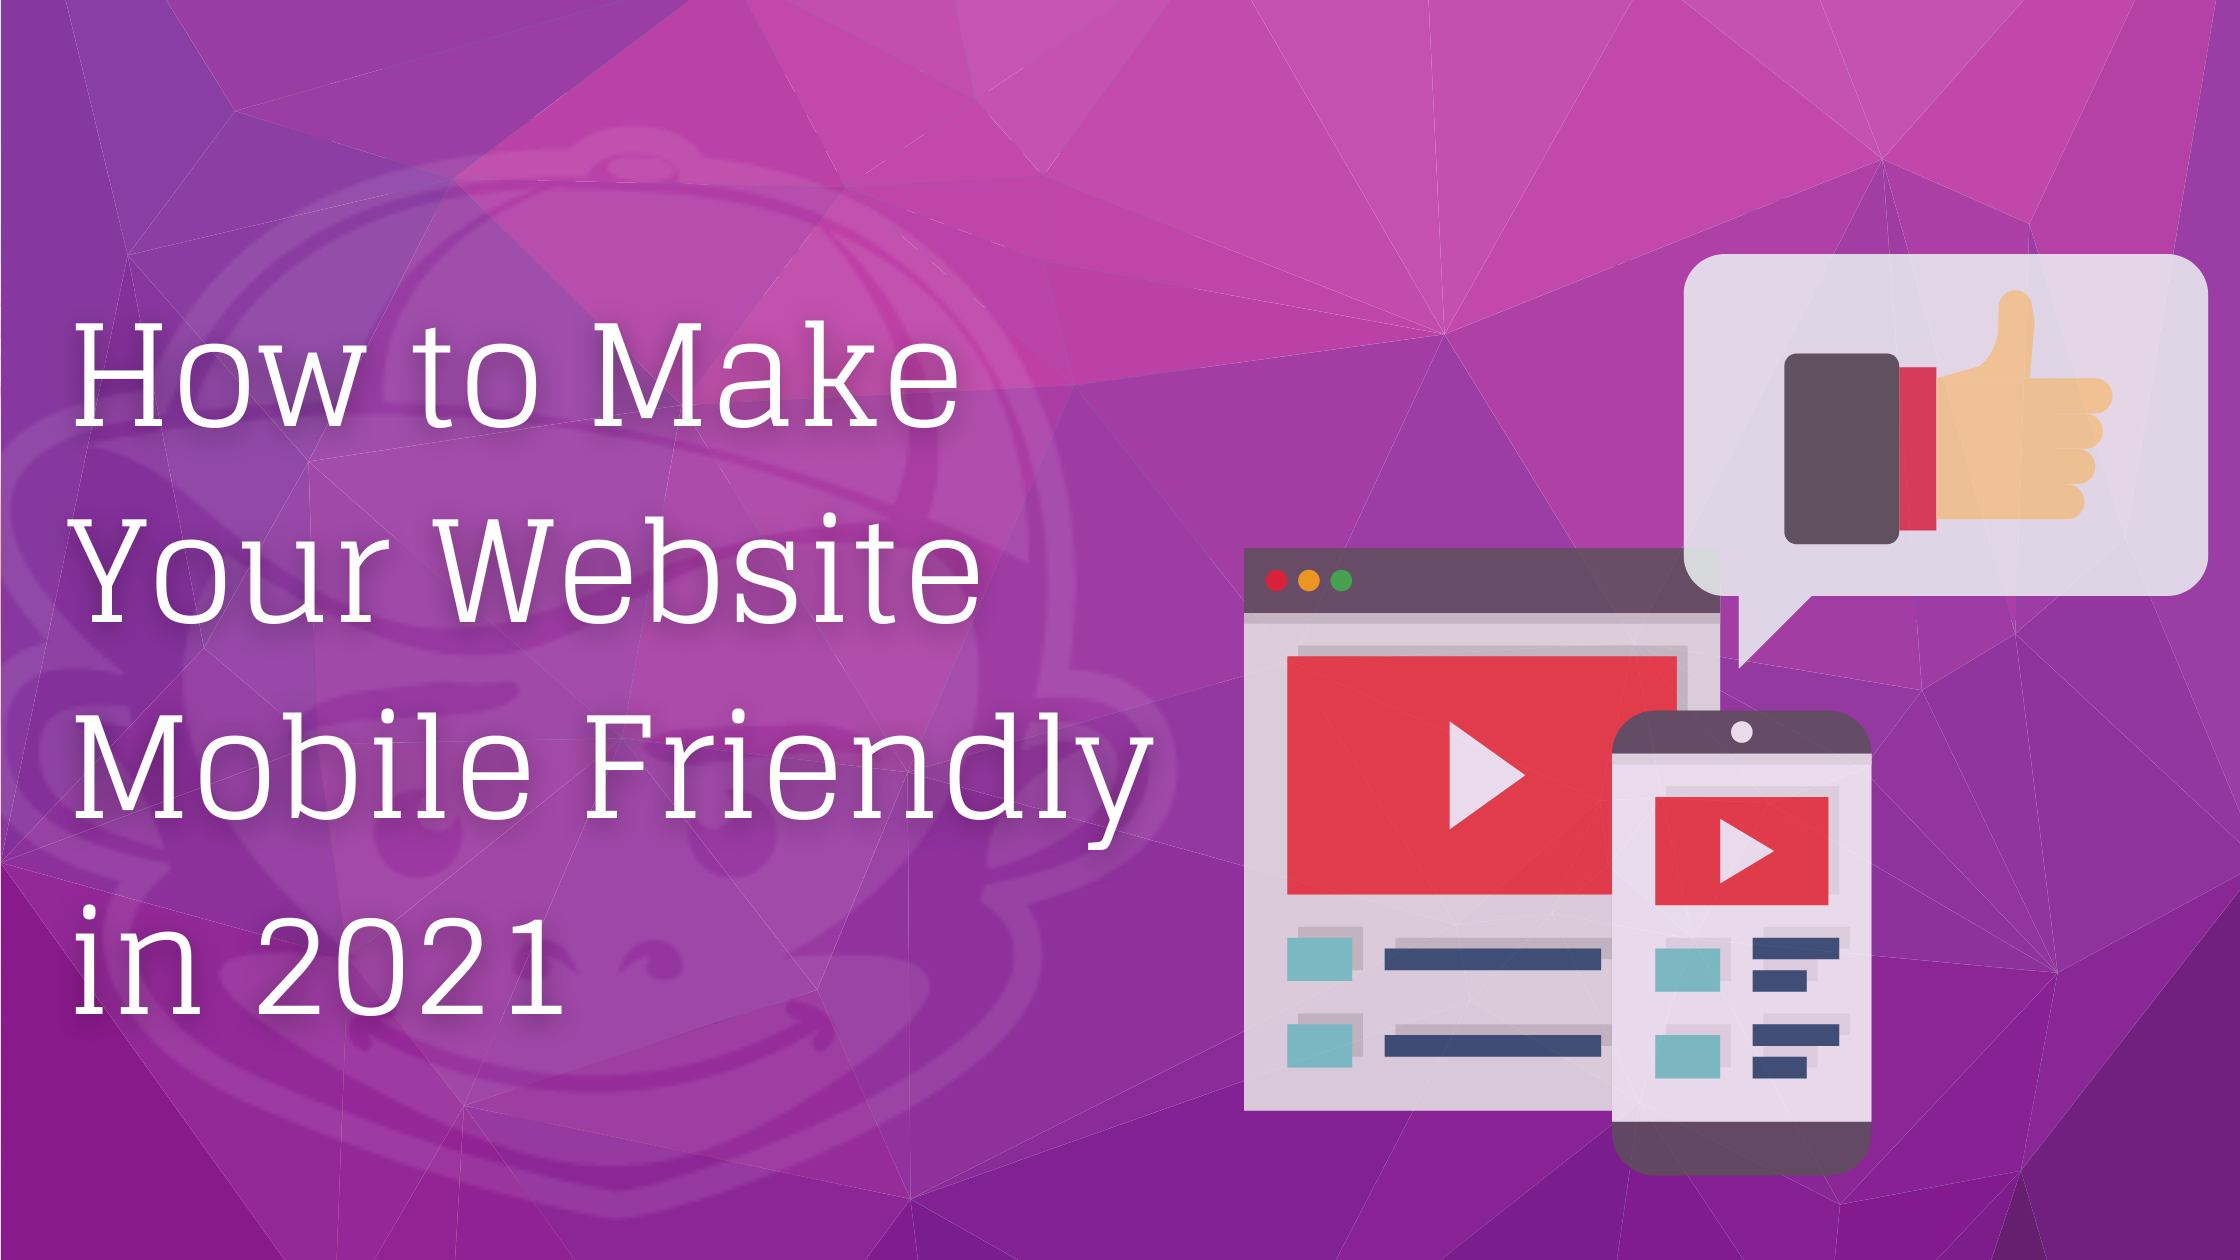 How to Make Your Website Mobile Friendly in 2021